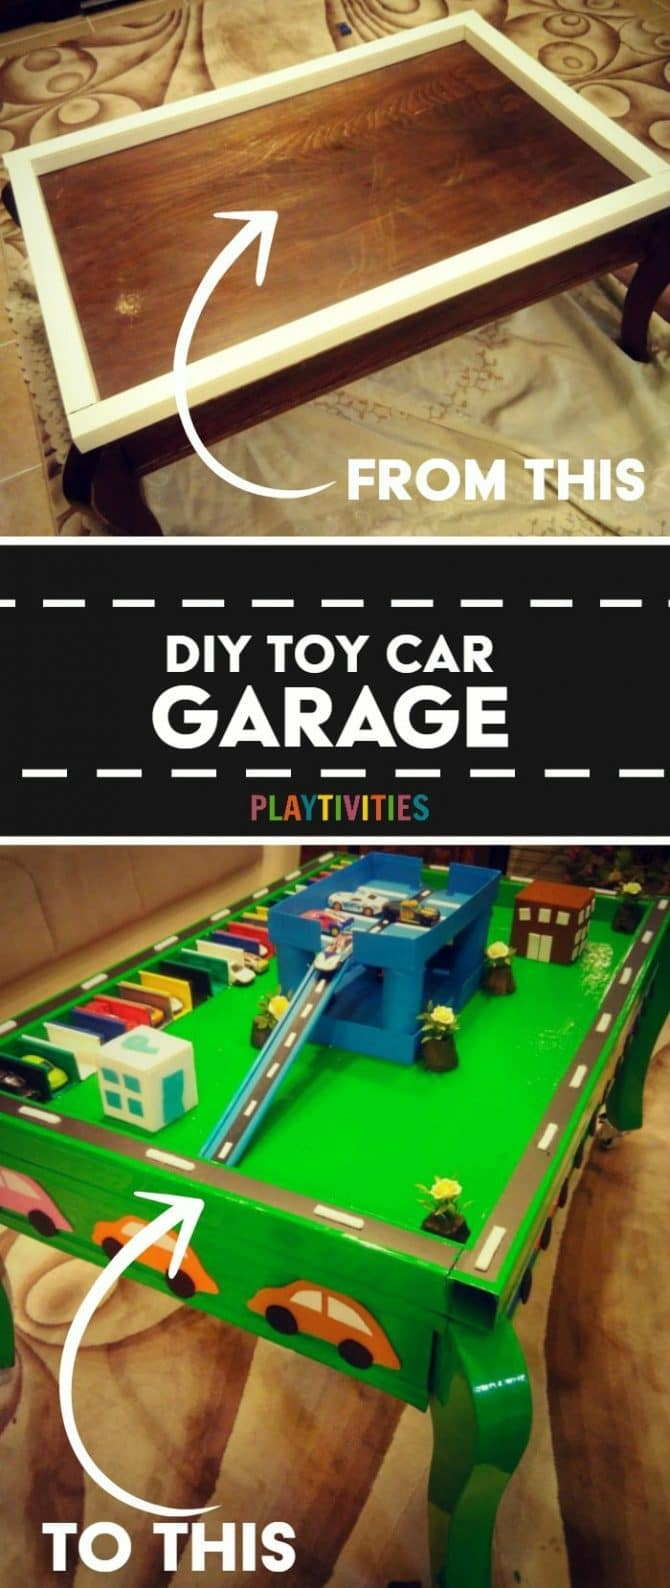 diy toy car garage